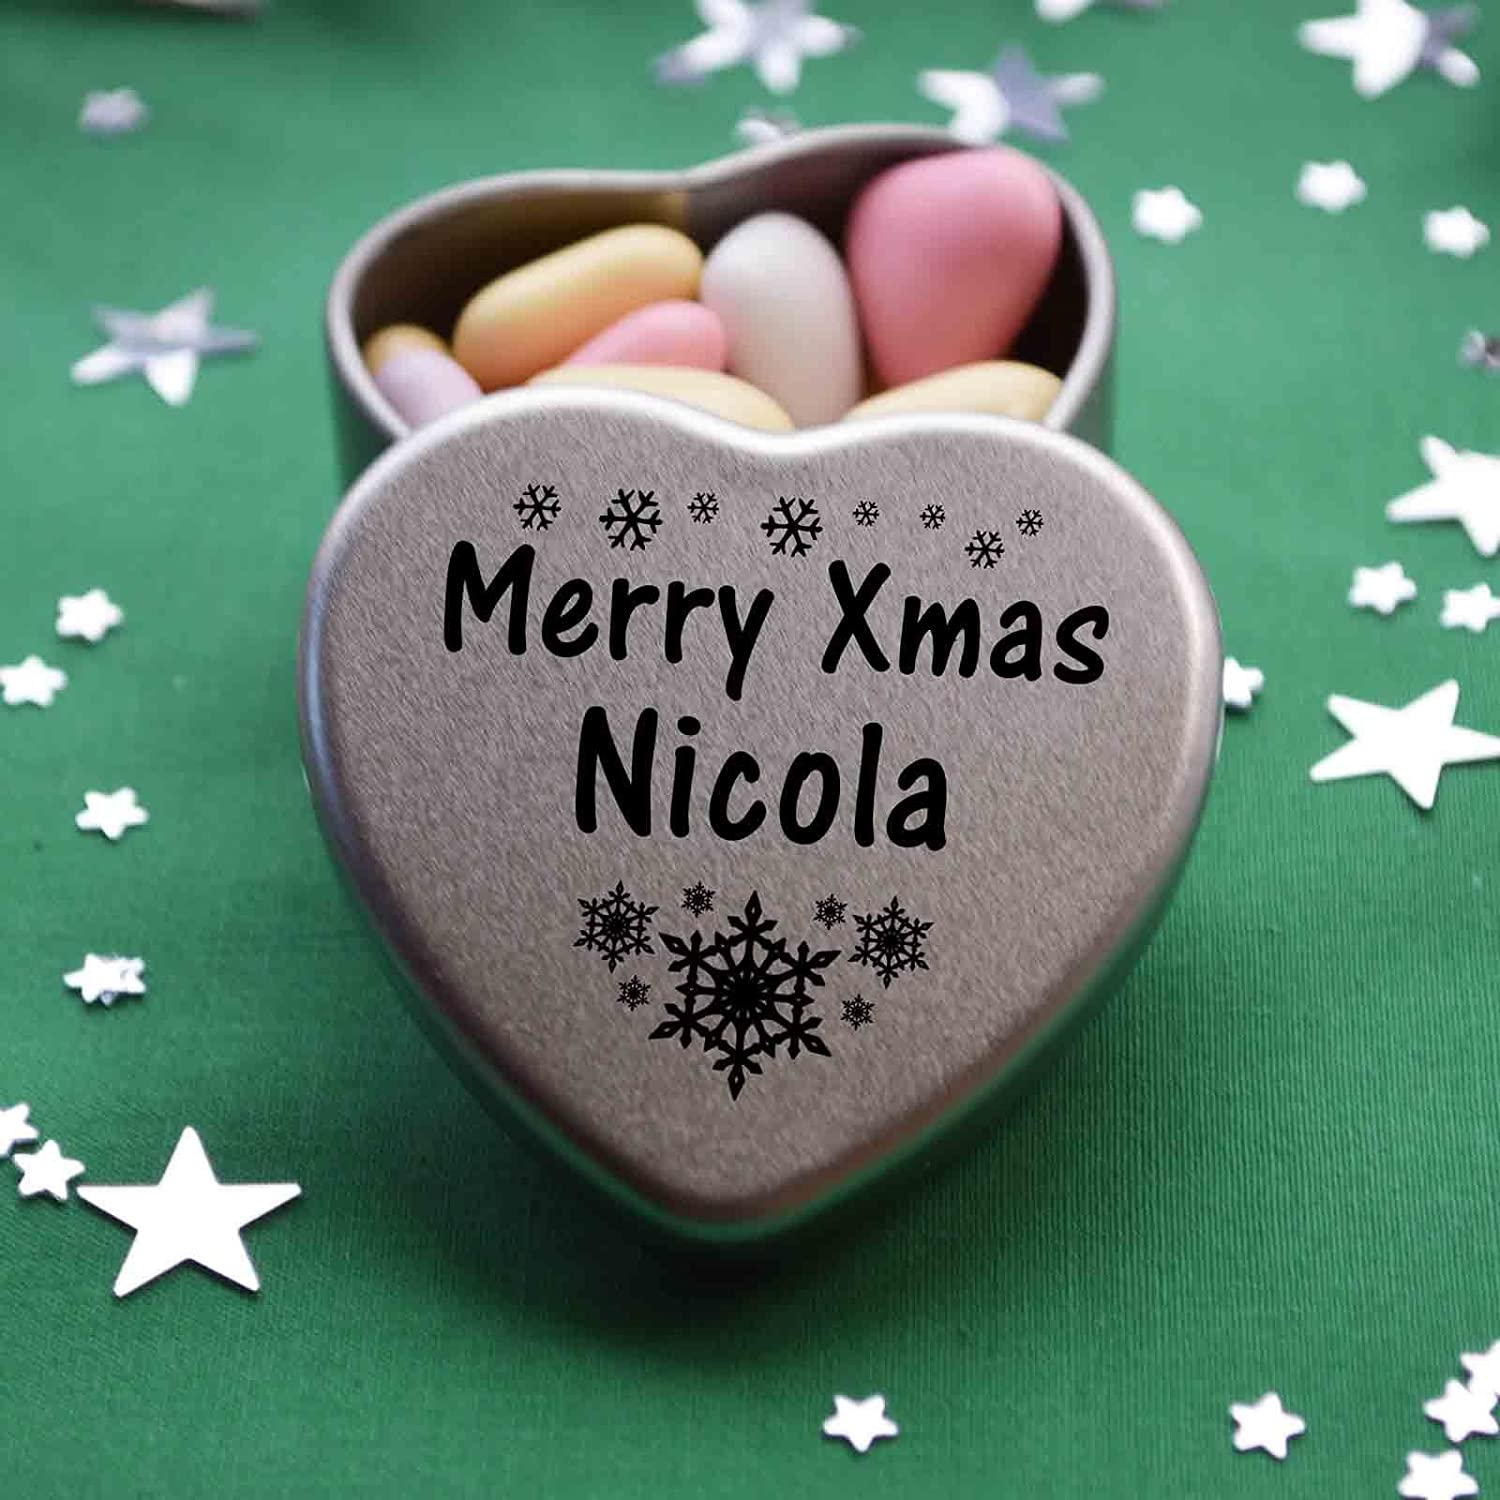 Three designs Available Great Christmas Present for Nicola Makes the perfect Stocking Filler or Card alternative Merry Xmas Nicola Mini Heart Gift Tin with Chocolates Fits Beautifully in the palm of your hand Tin Dimensions 45mmx45mmx20mm Father Christ